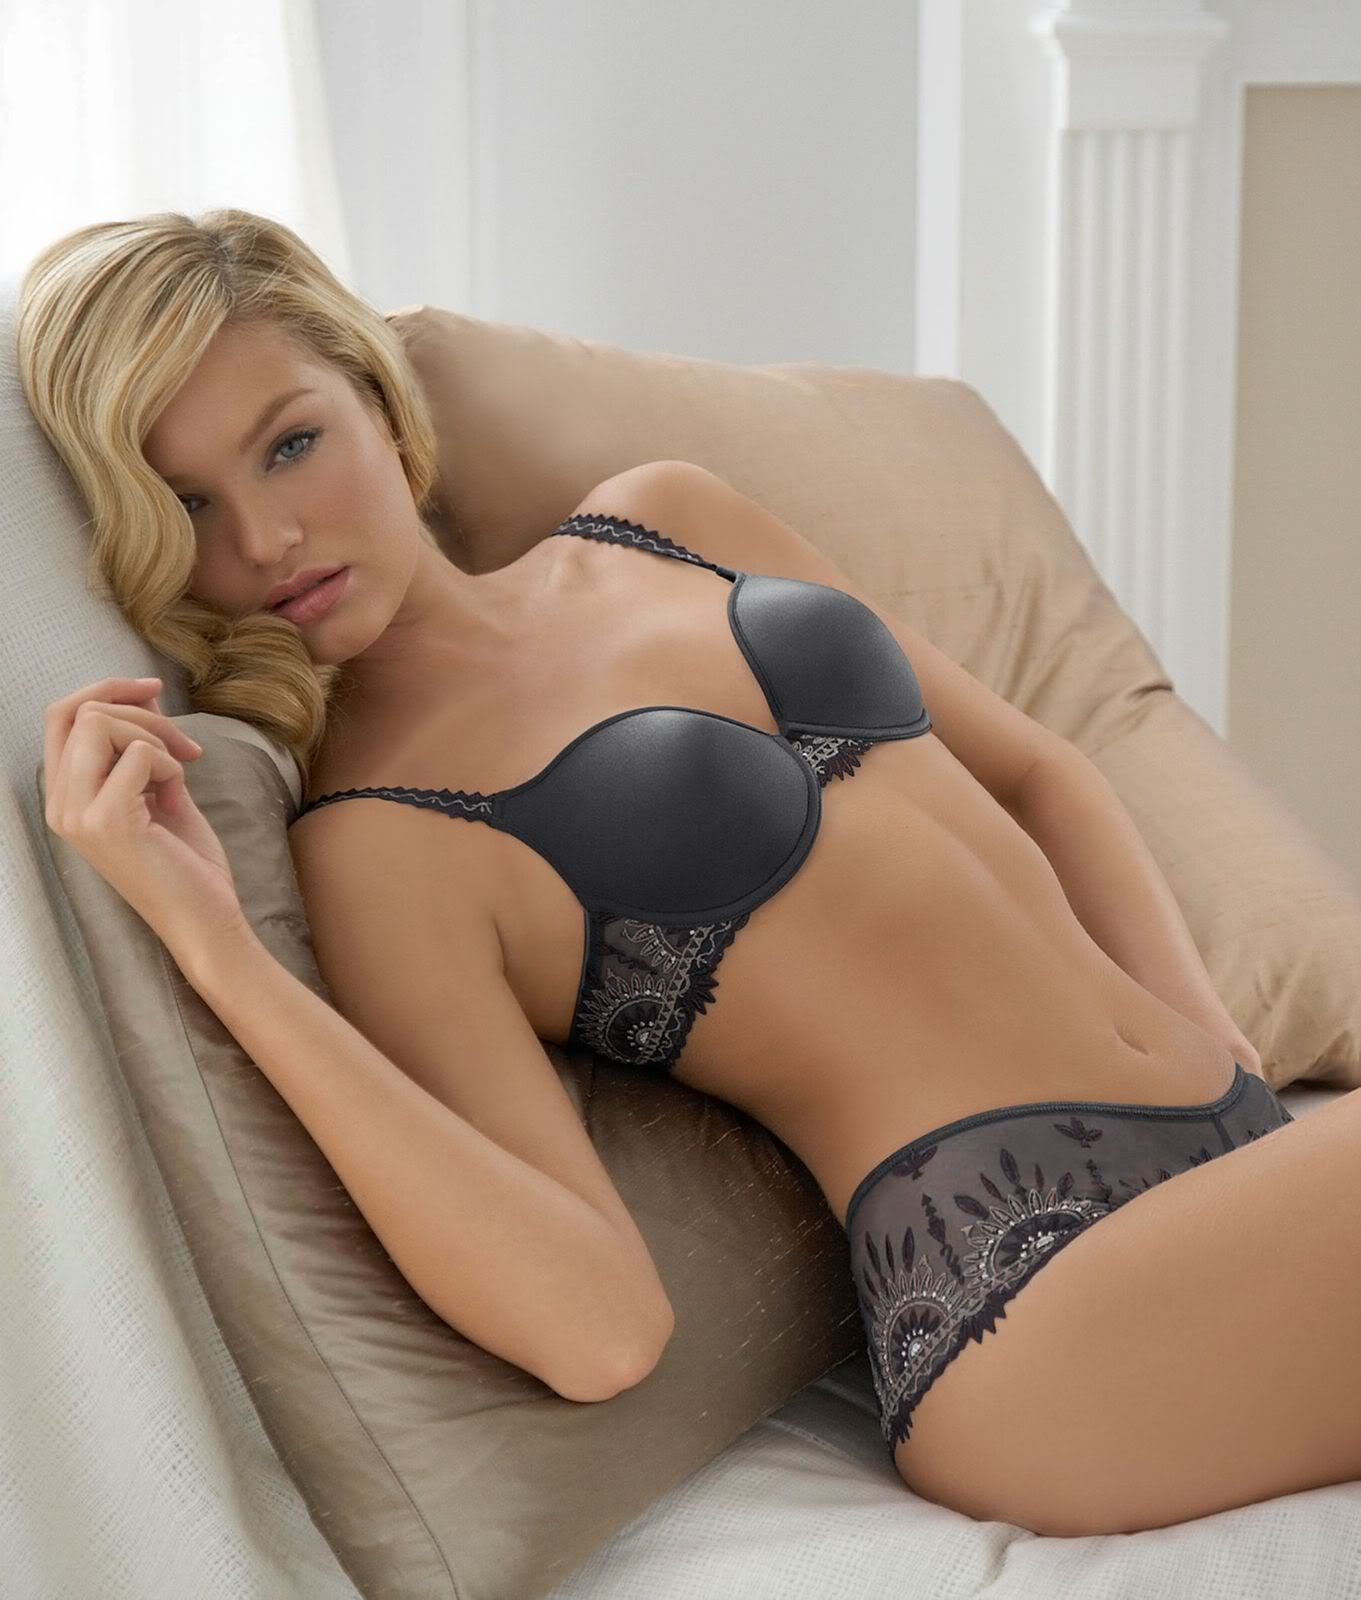 Candice Swanepoel Lingerie - Sexy Actress Pictures | Hot Actress Pictures